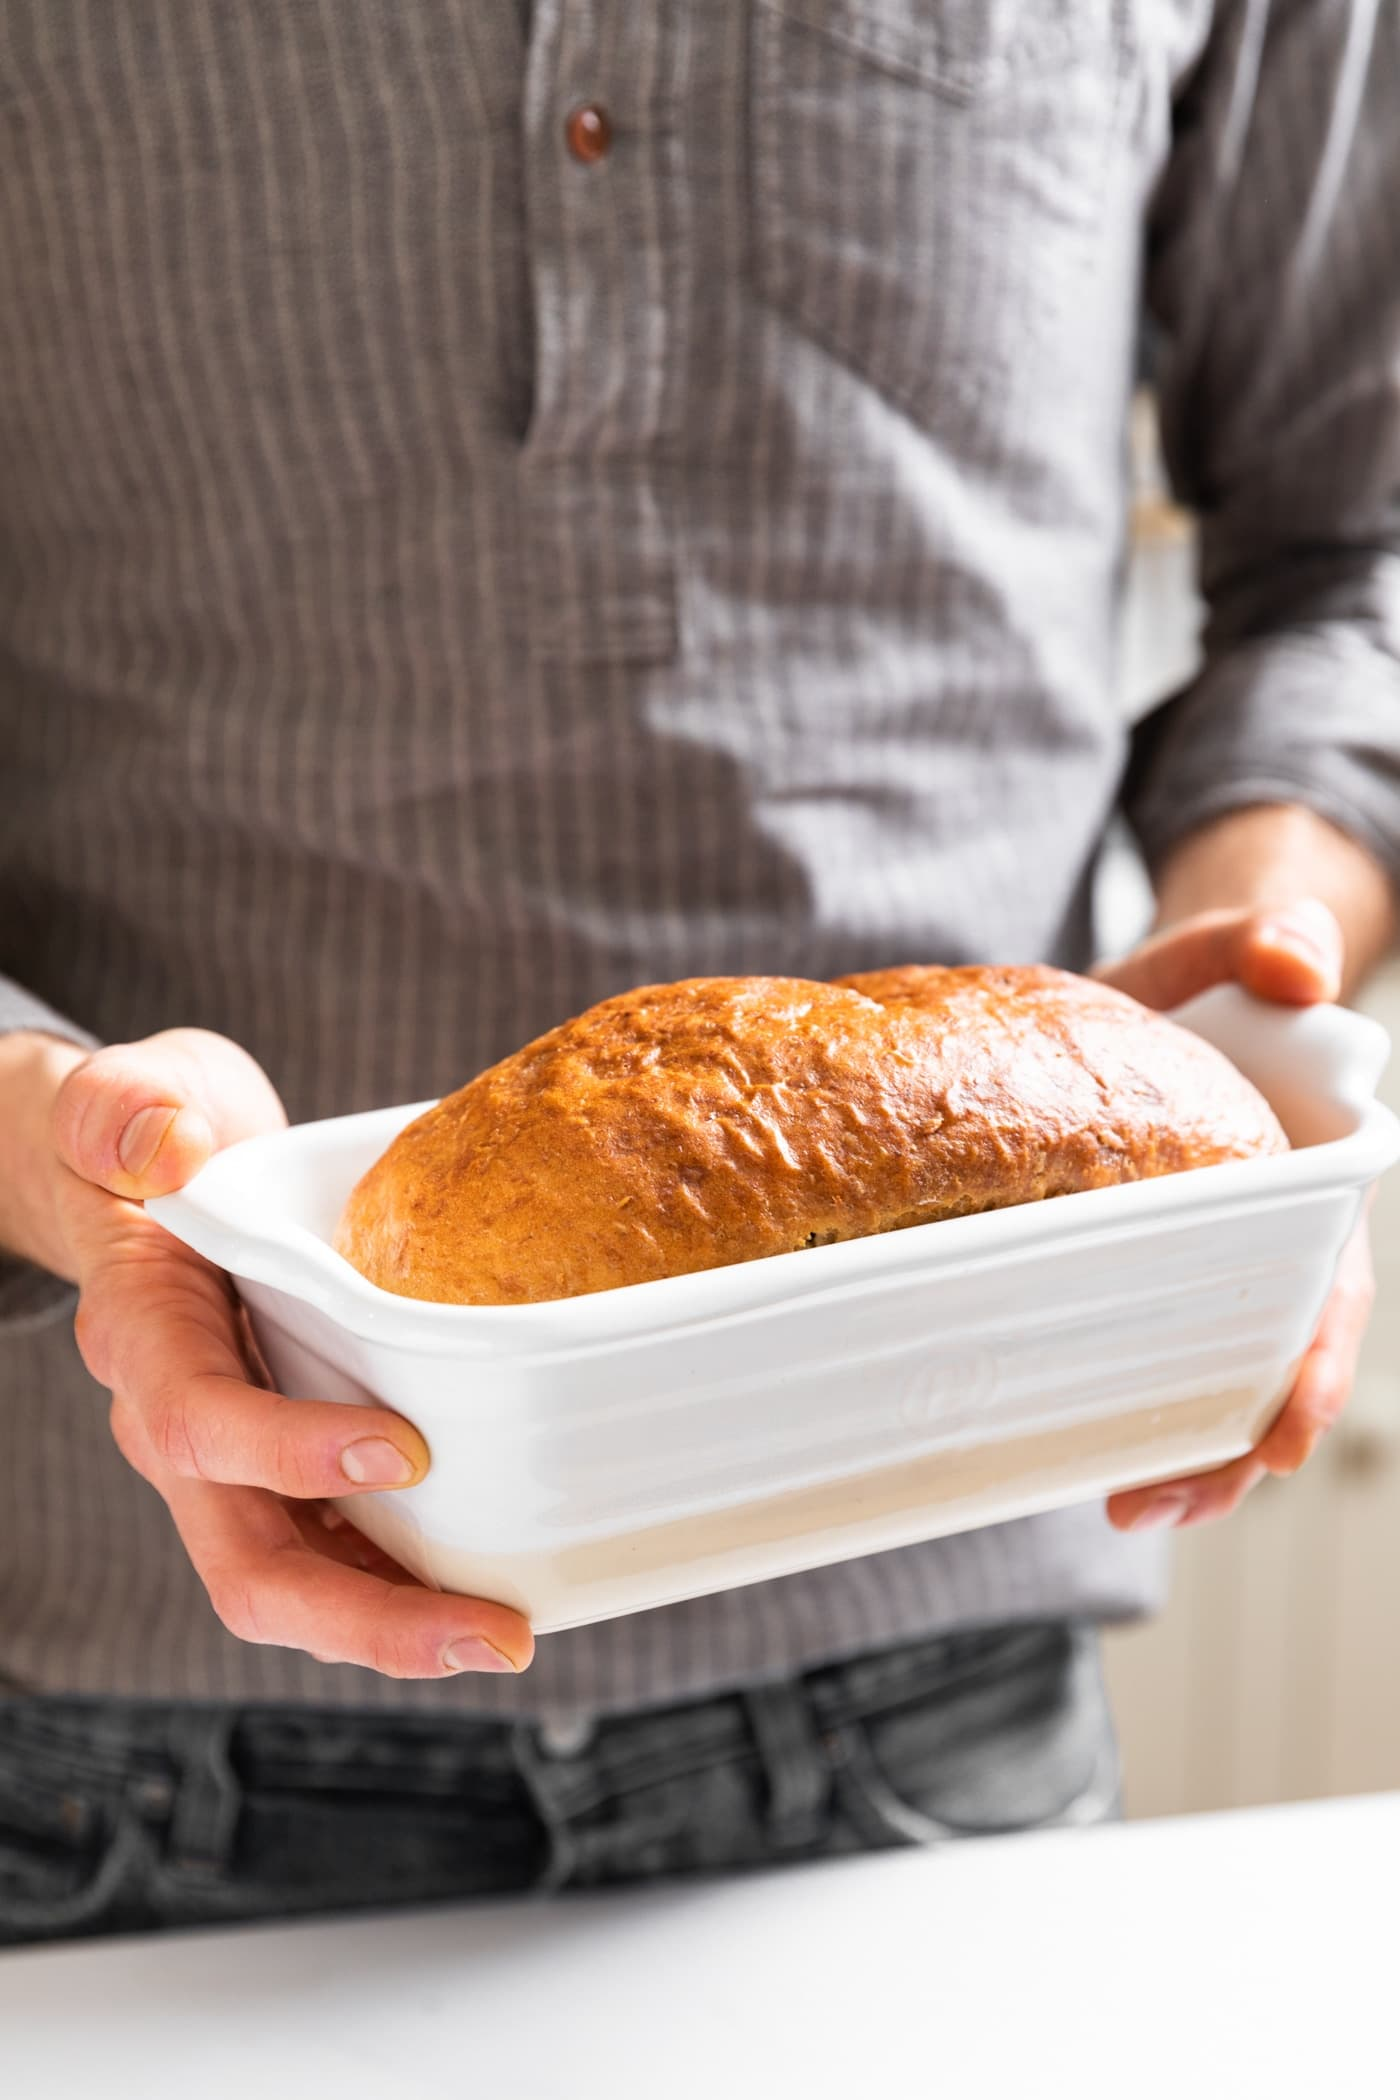 Loaf of golden colored bread sitting in white loaf pan being held by person with gray shirt on